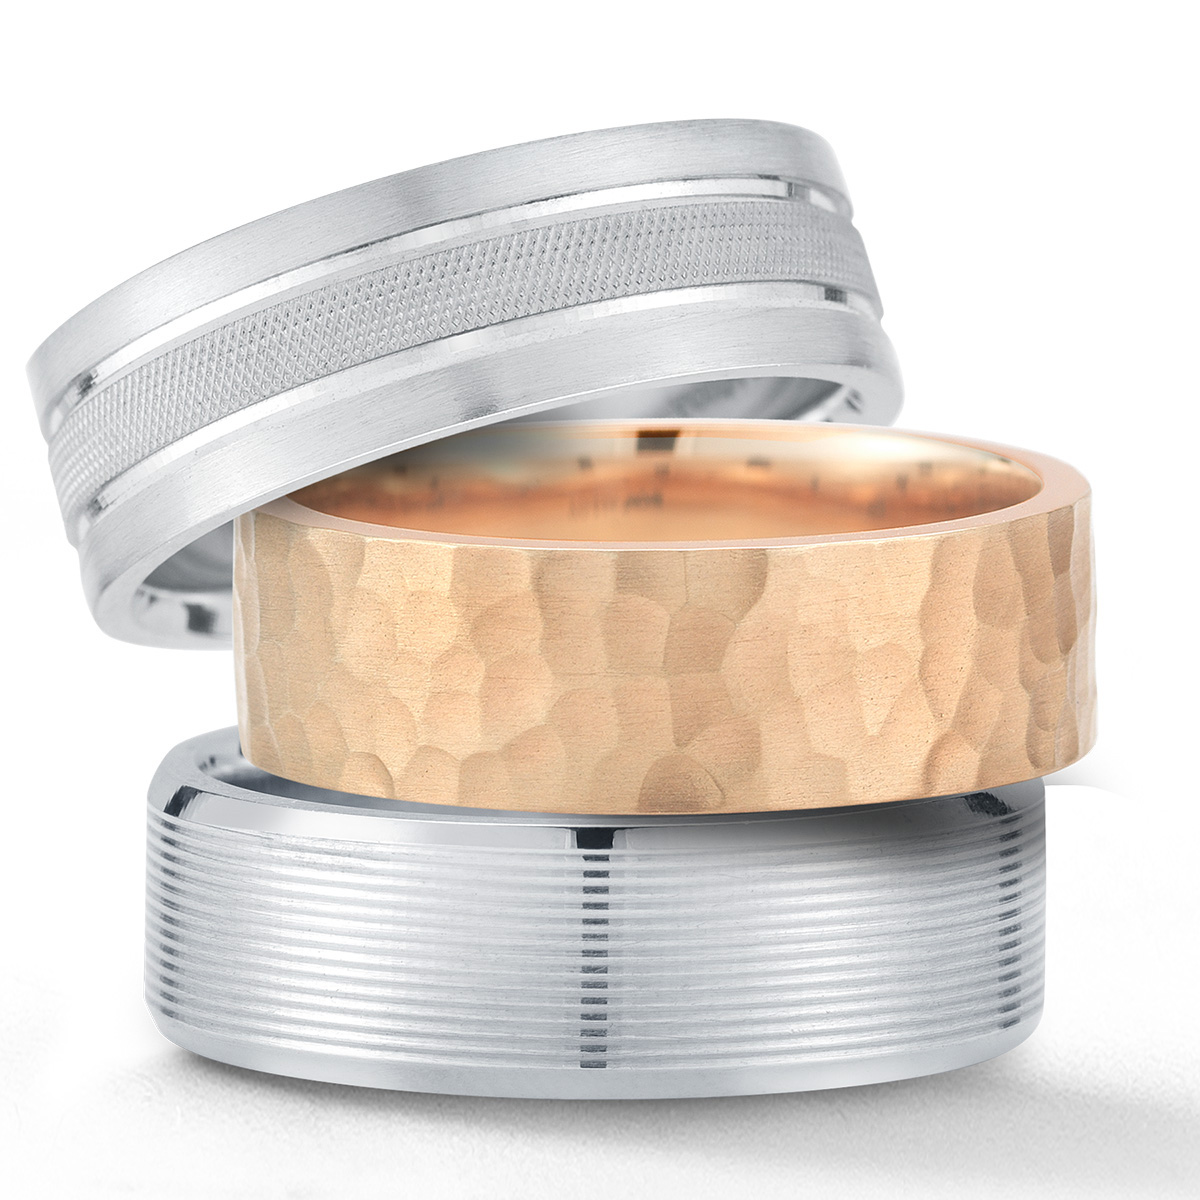 Wedding bands available at Diamonds Direct in Salt Lake City.